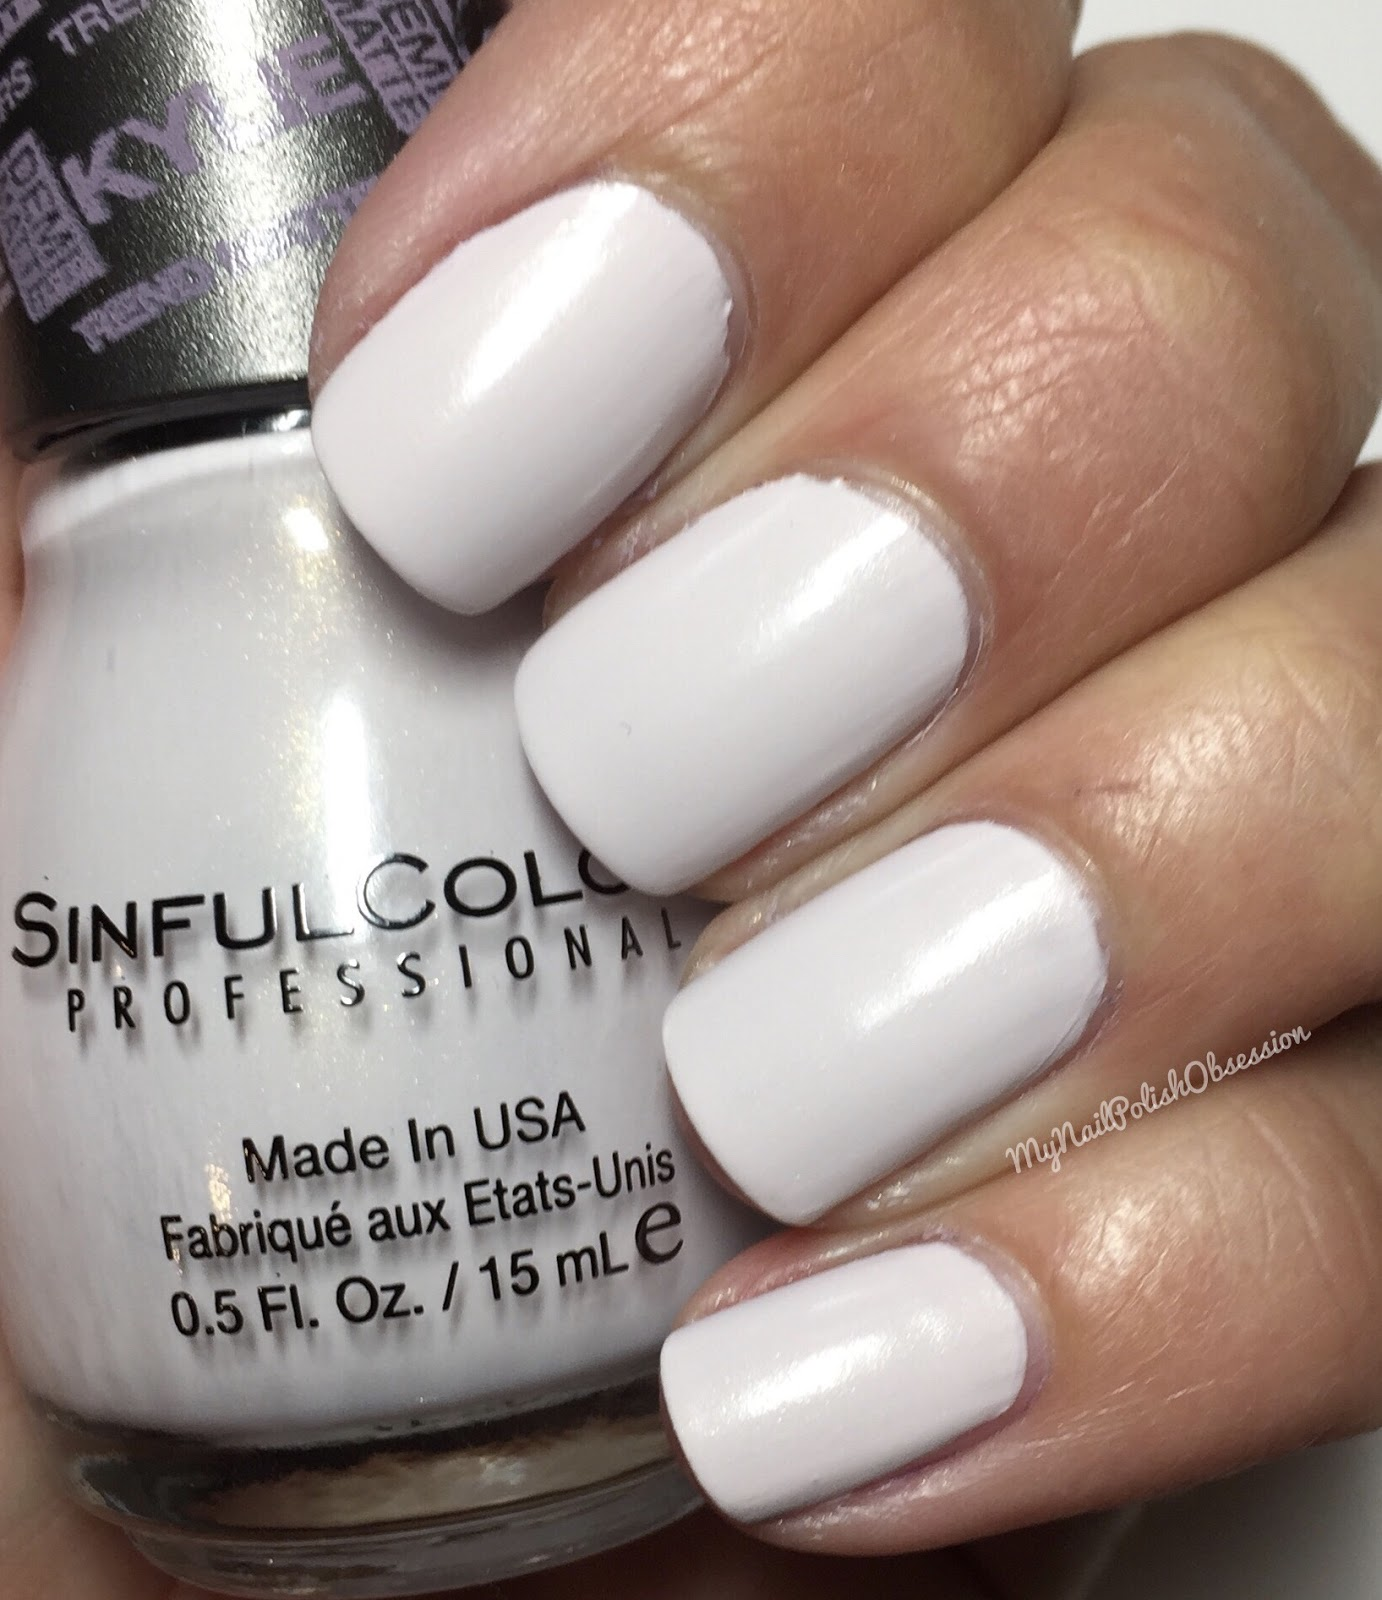 My Nail Polish Obsession Sinful Colors Kylie Jenner Trend Matters Partial Review